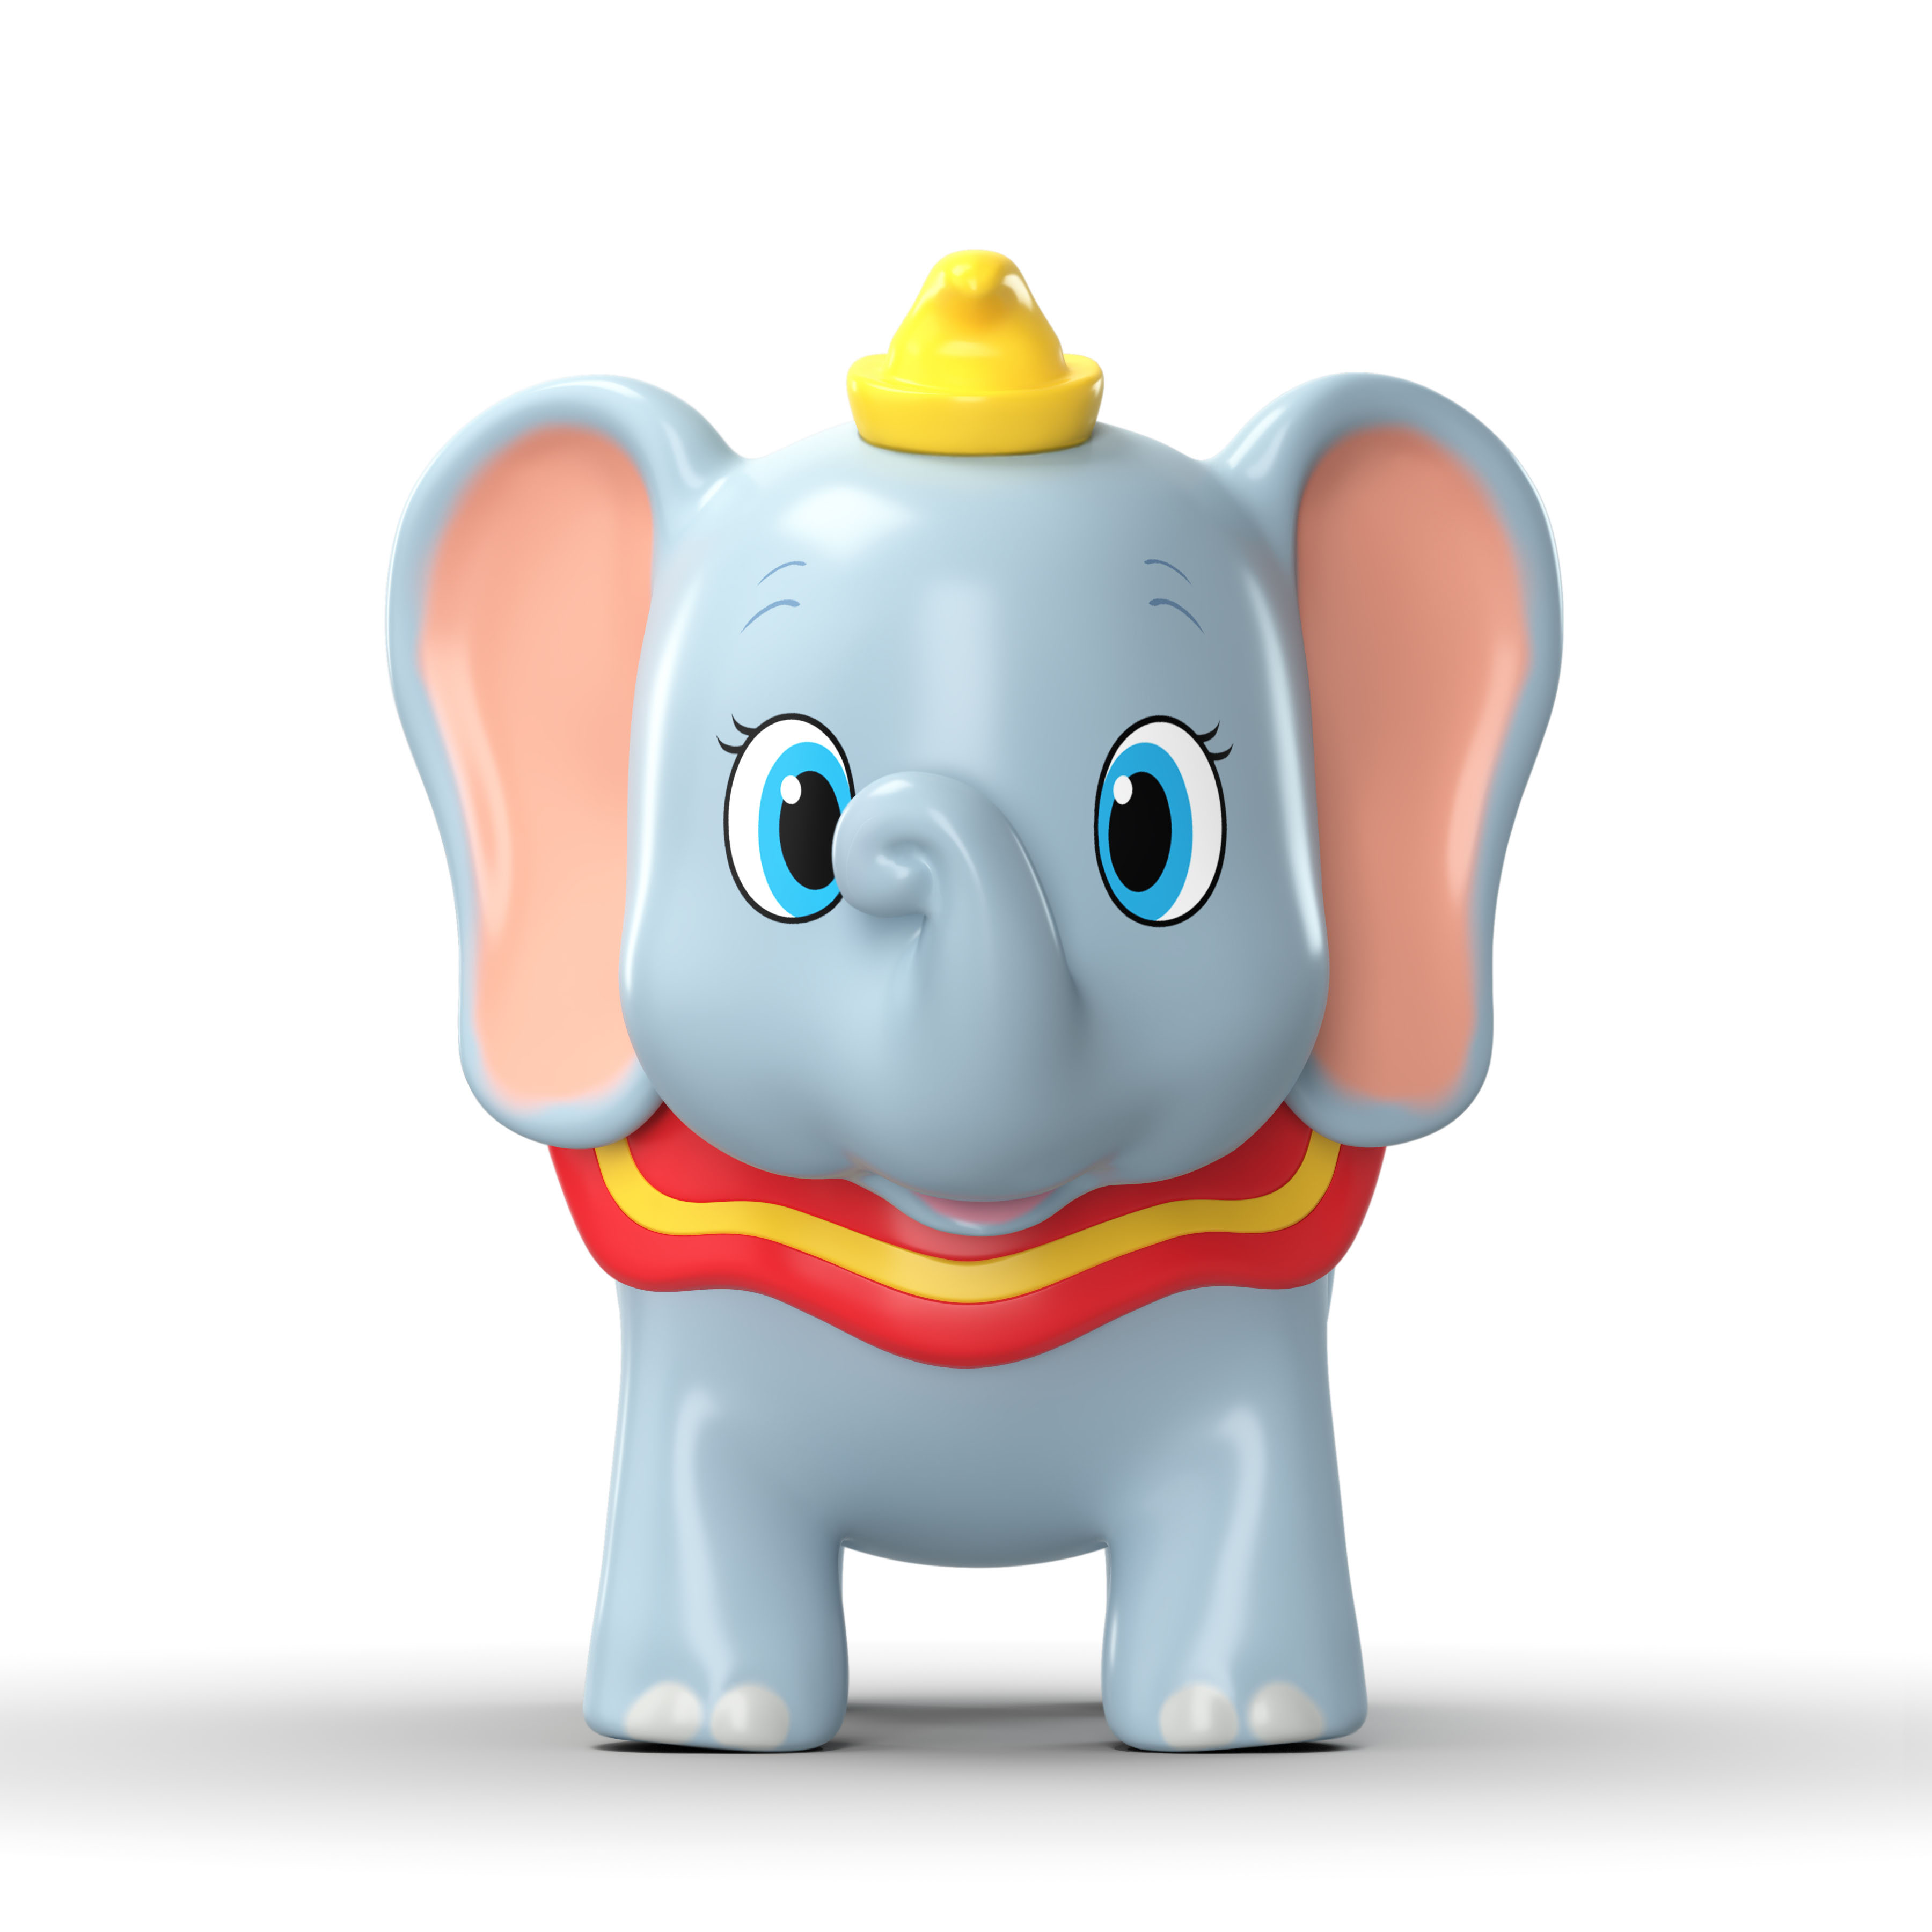 Disney's Dumbo character inflatable toy concept rendering